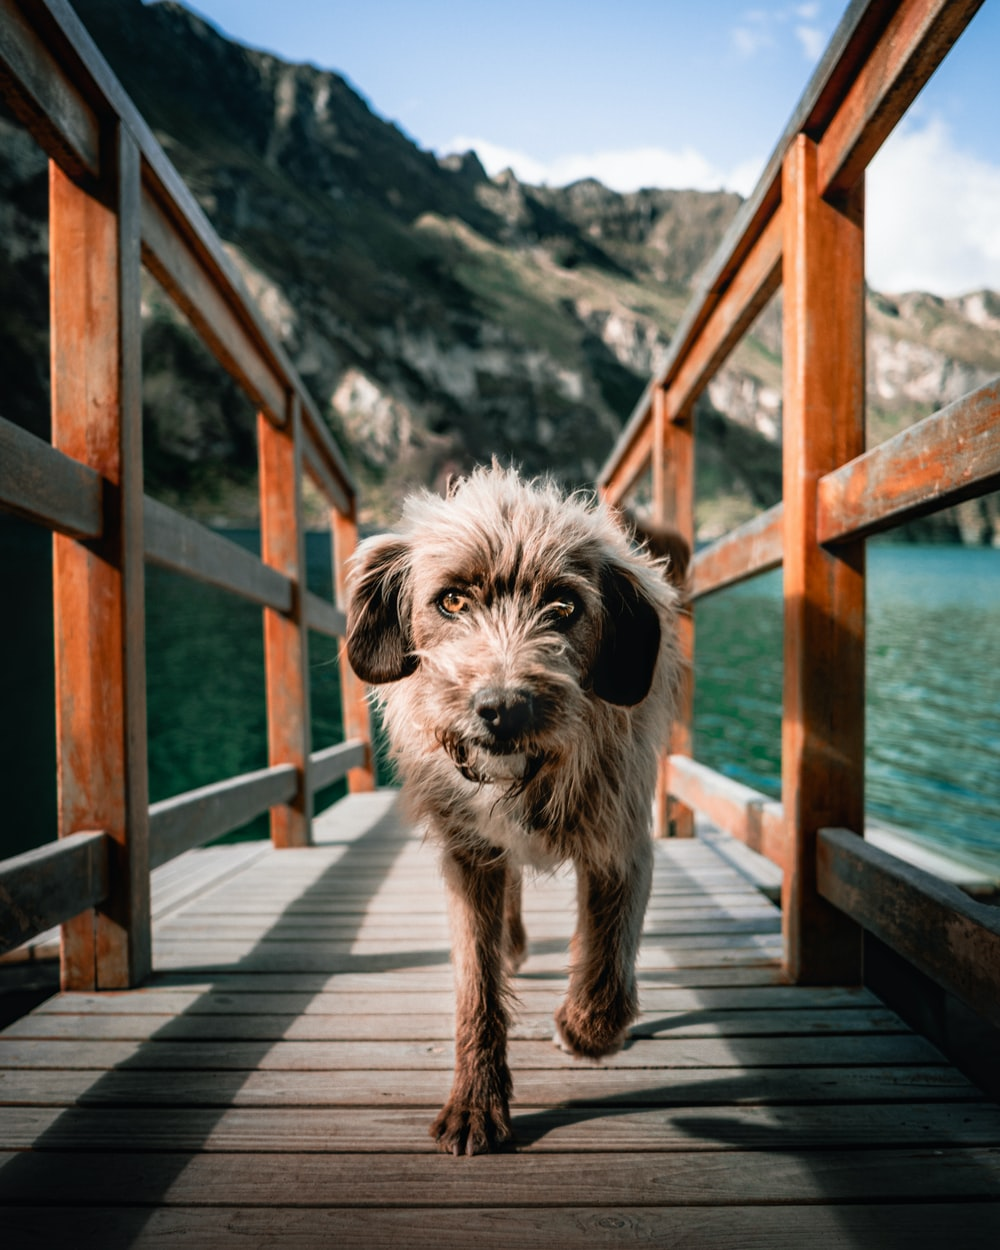 white and brown long coated dog on brown wooden dock during daytime